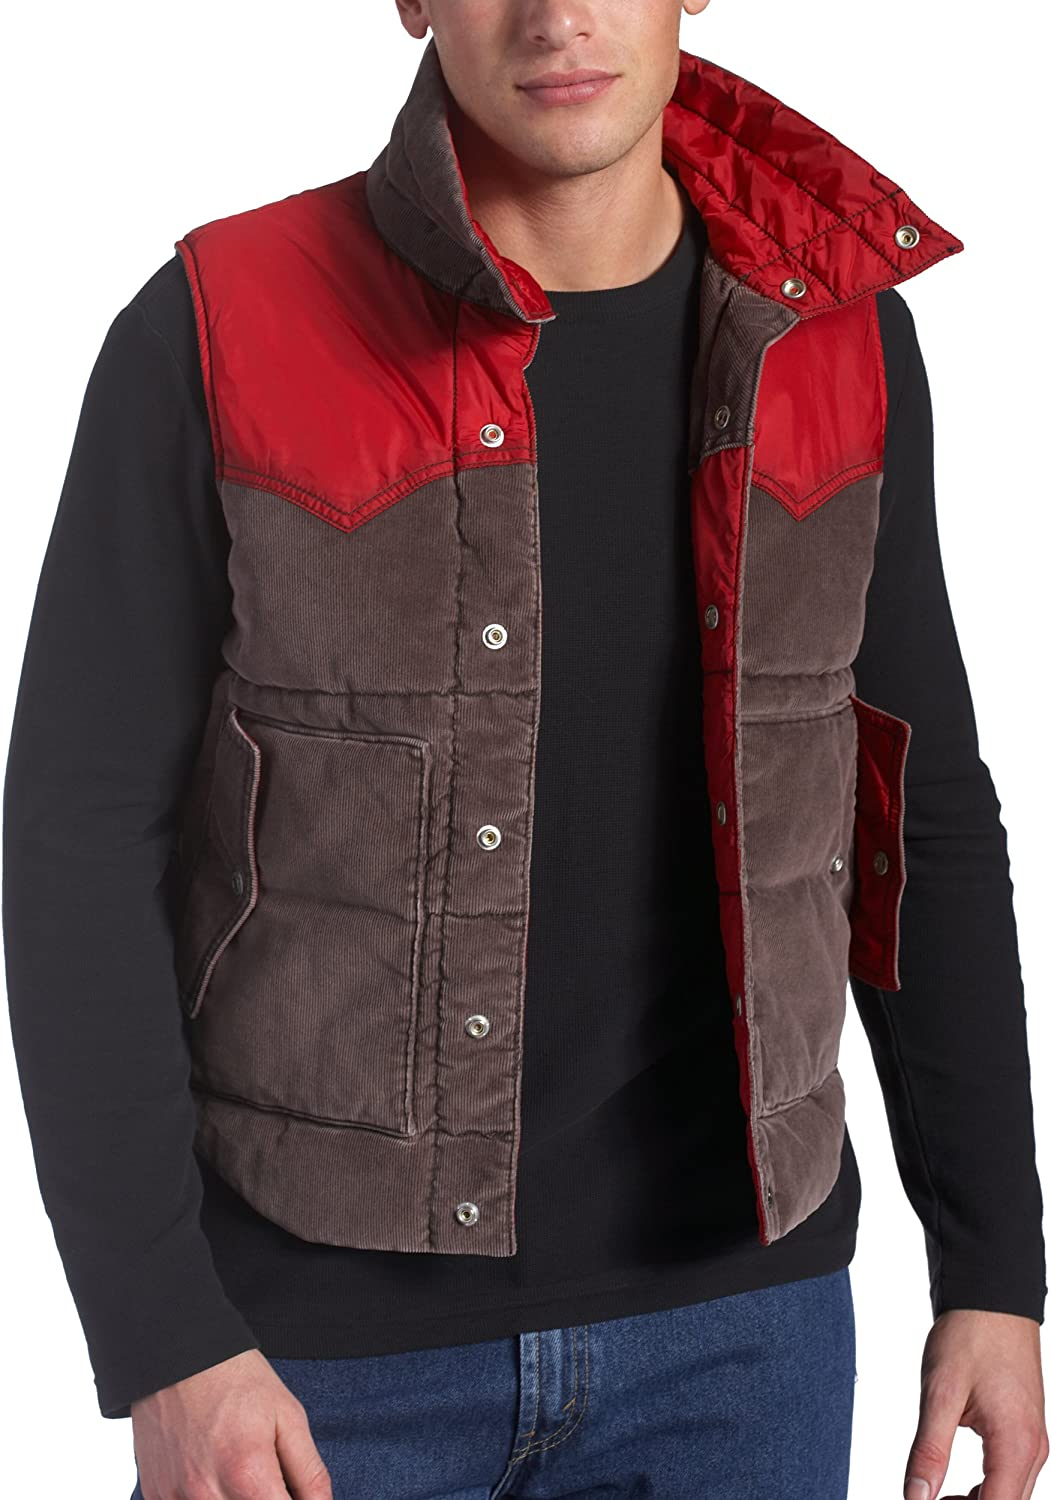 Limited time trial price Levi's Young Max 47% OFF Men's Drifter Vest